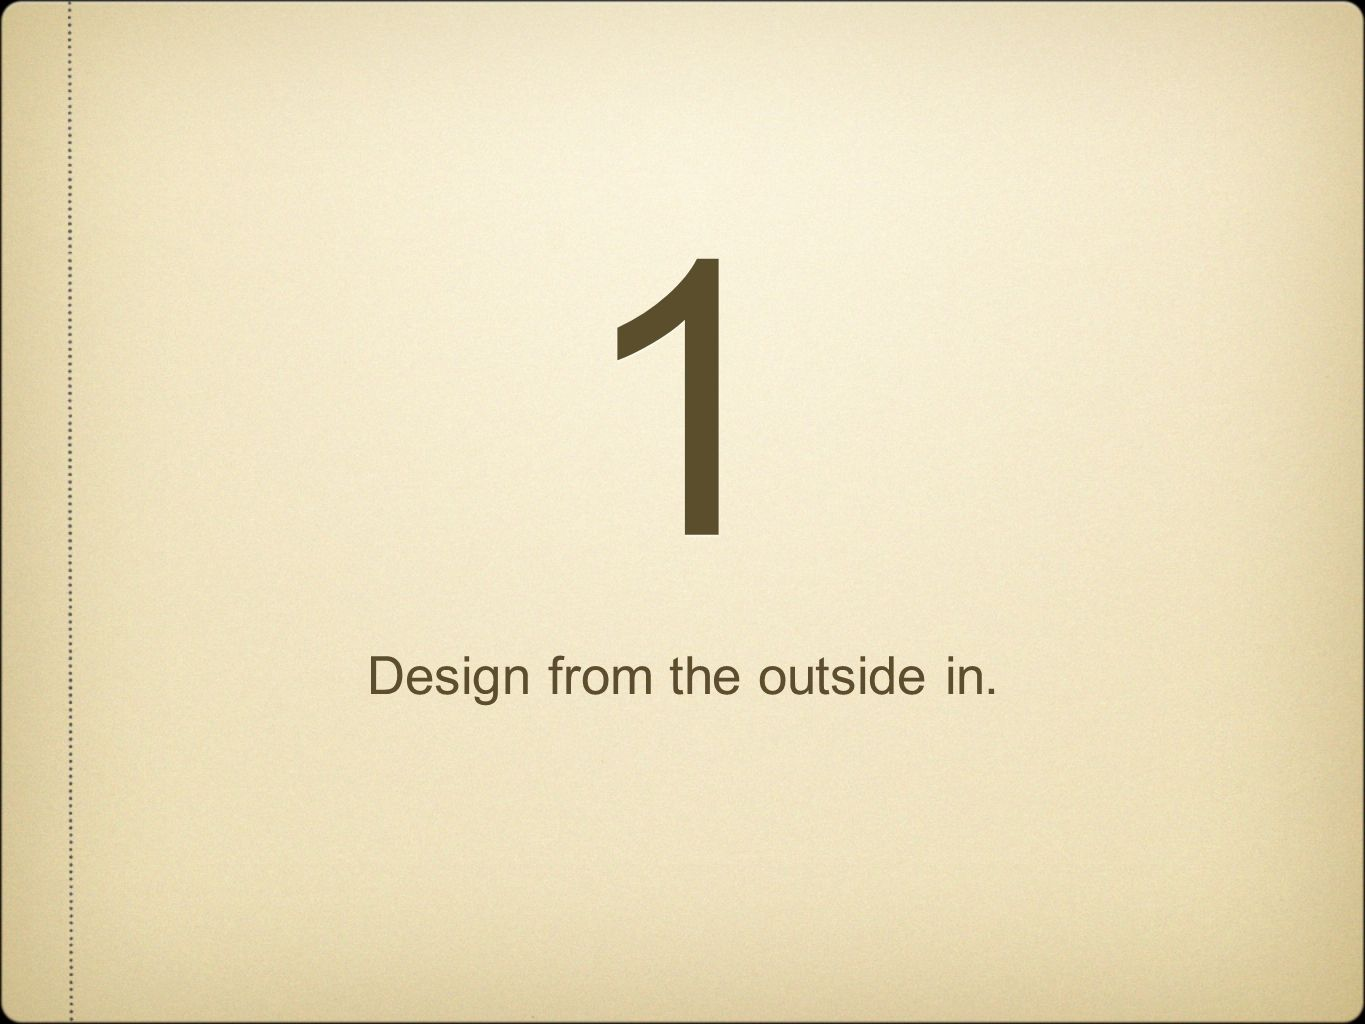 1 1 Design from the outside in.